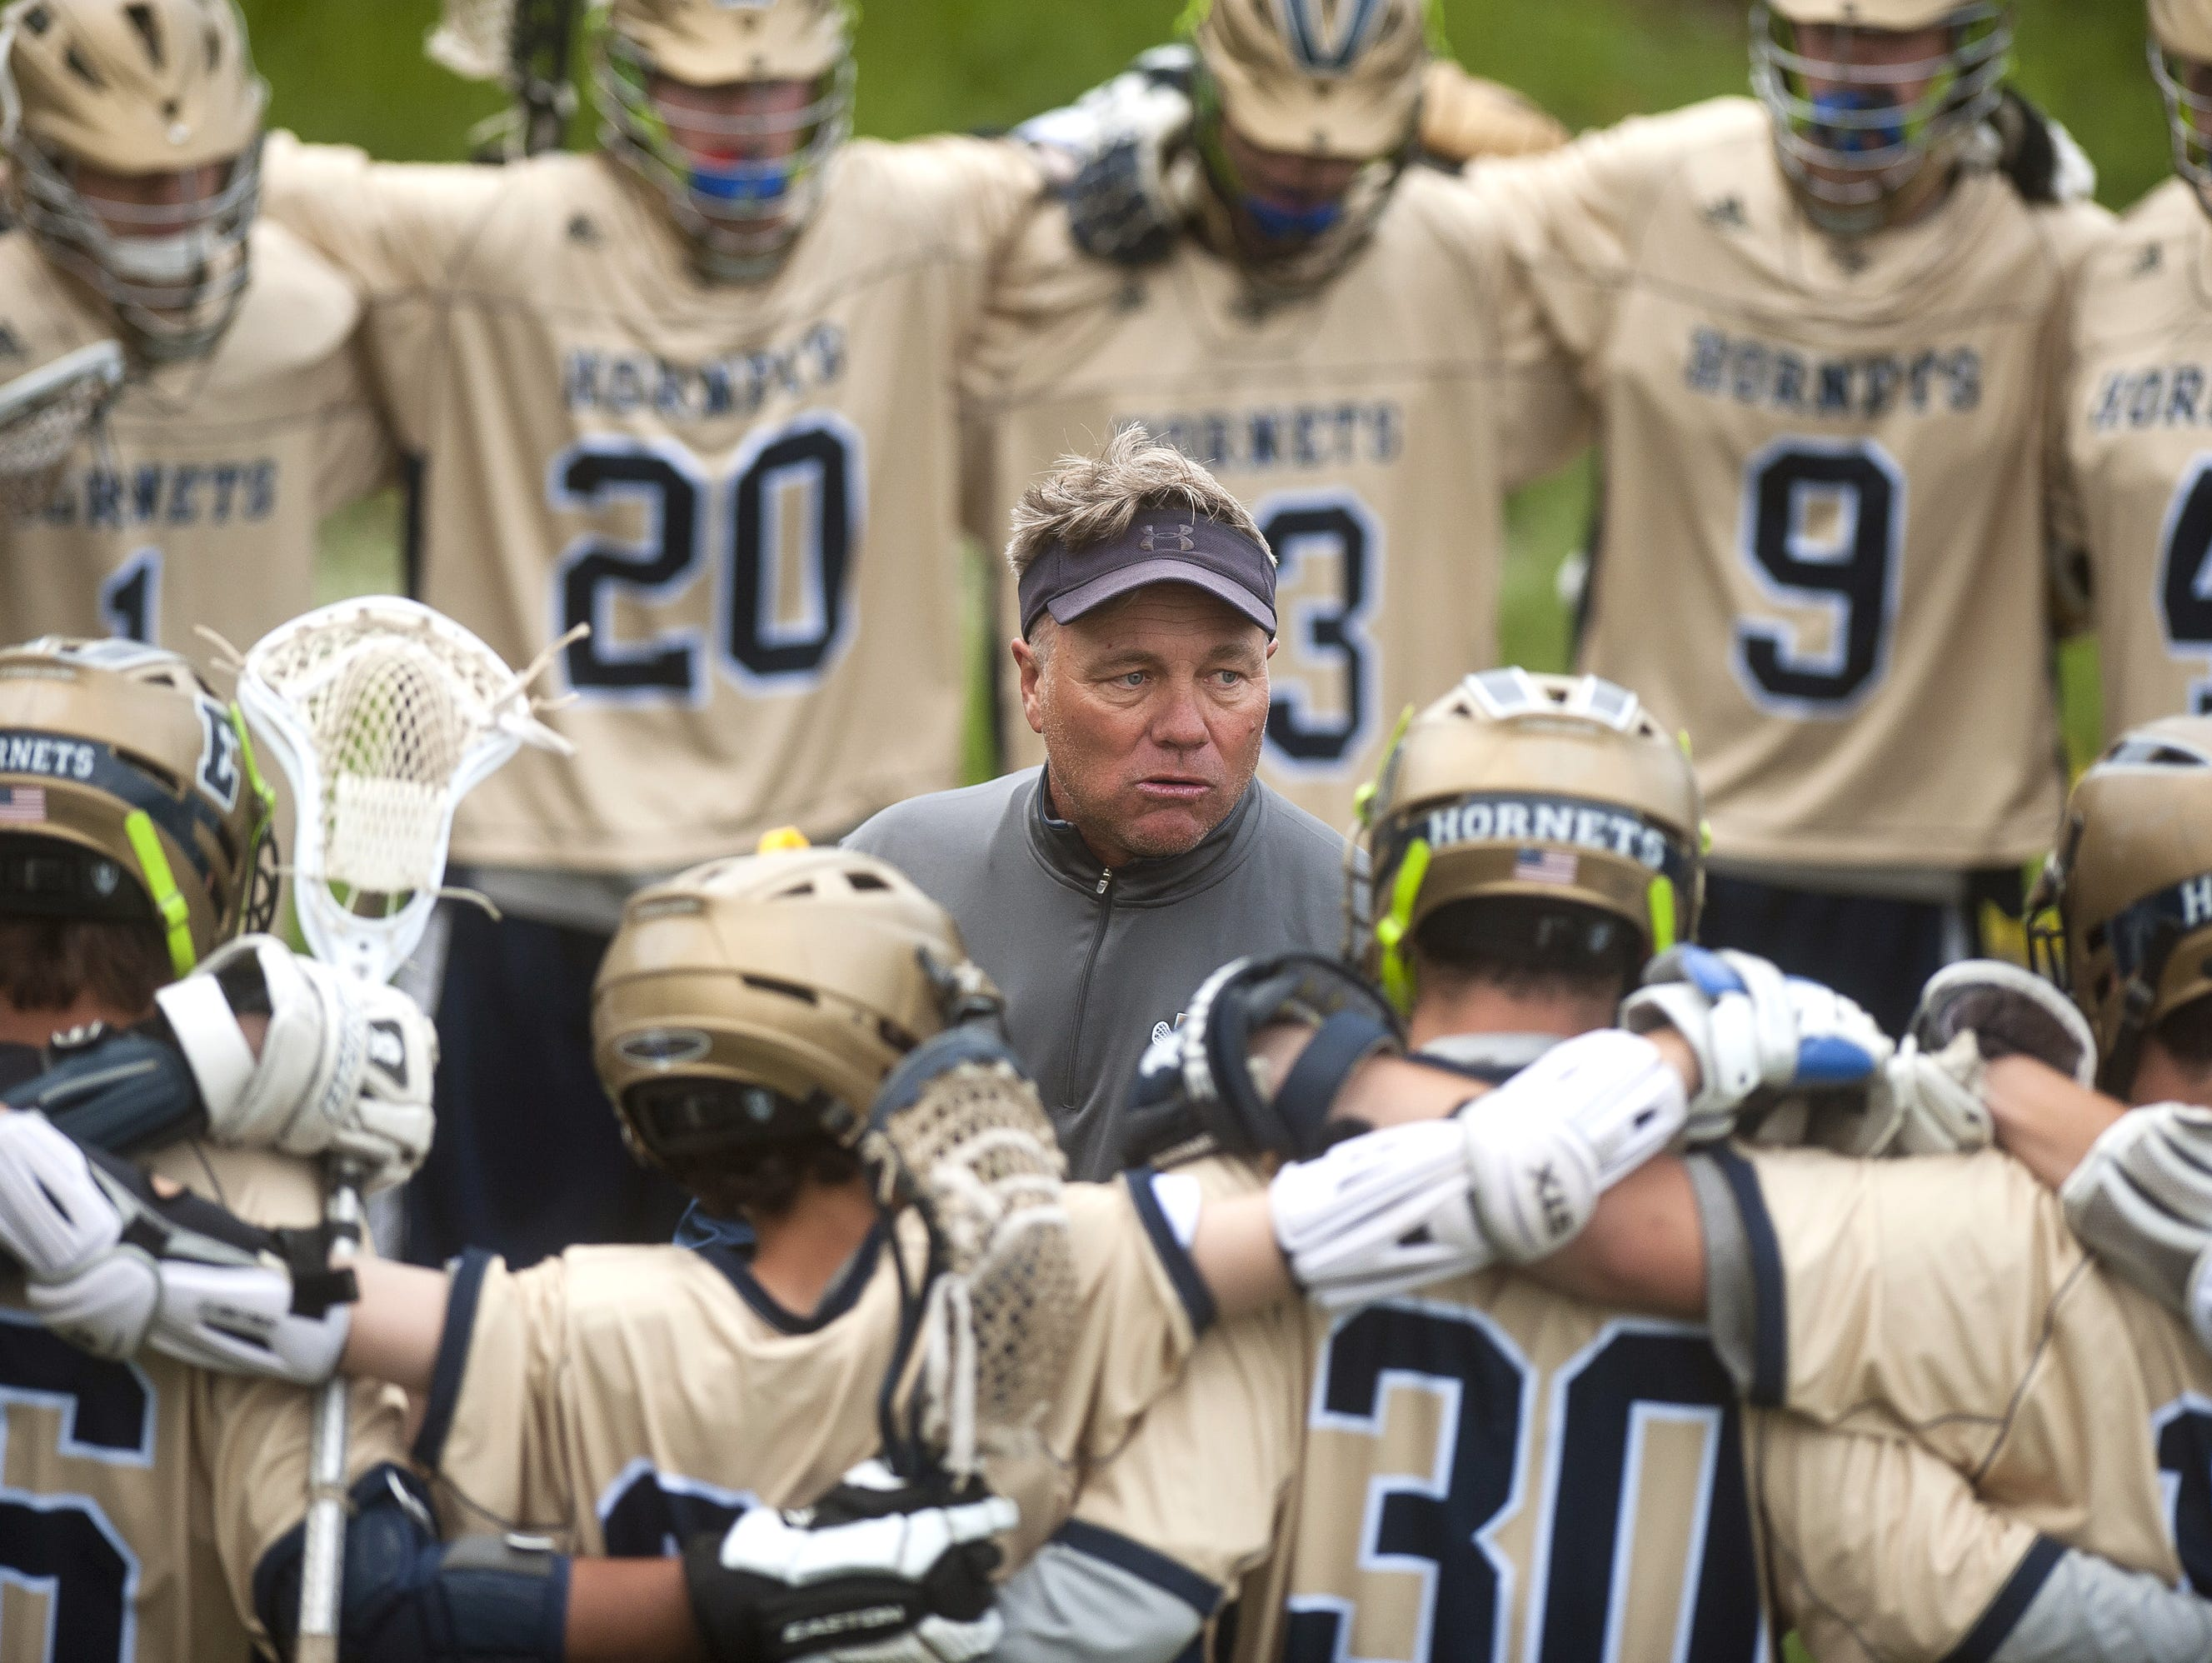 Essex boys lacrosse coach Dean Corkum, center, talks to his team during halftime of Tuesday's Division I semifinal at Middlebury College.